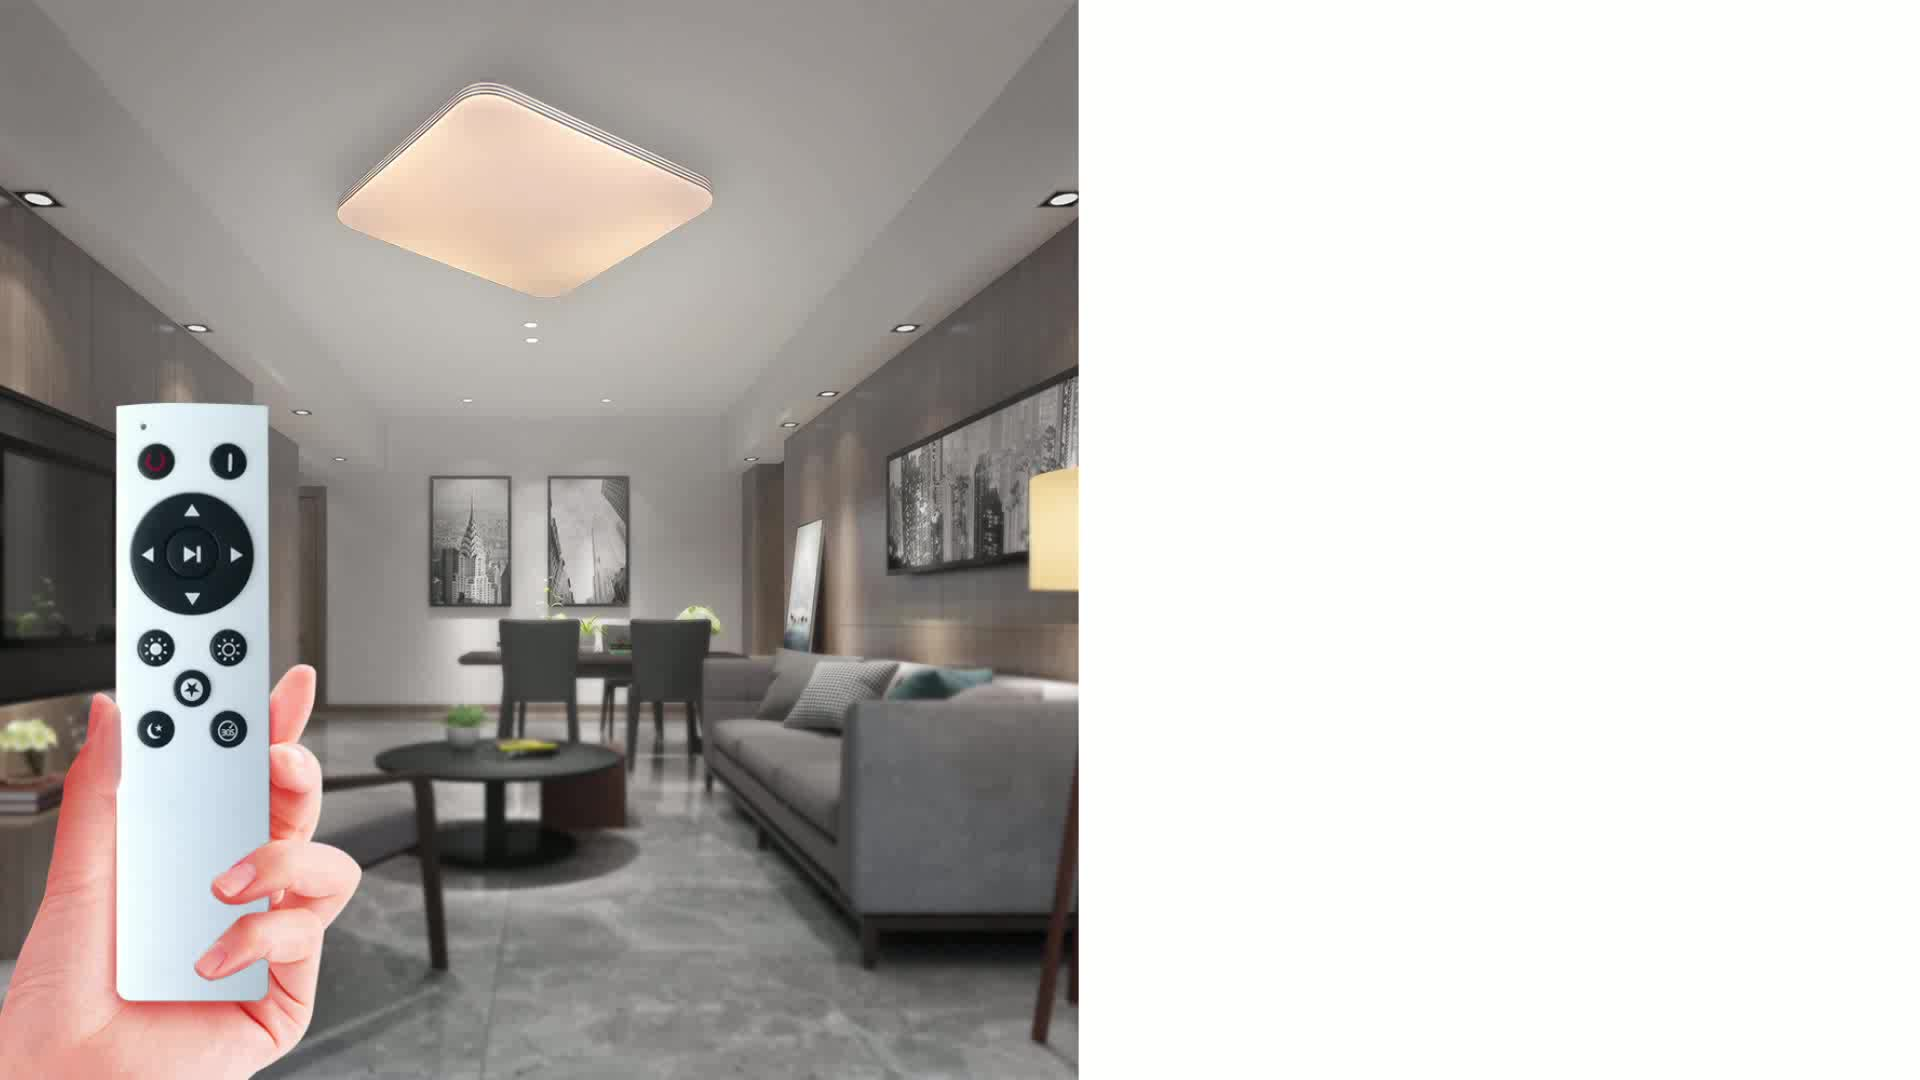 Envis got selling surface mounted rectangular recessed led ceiling lights 120mm hole diameter downlight square